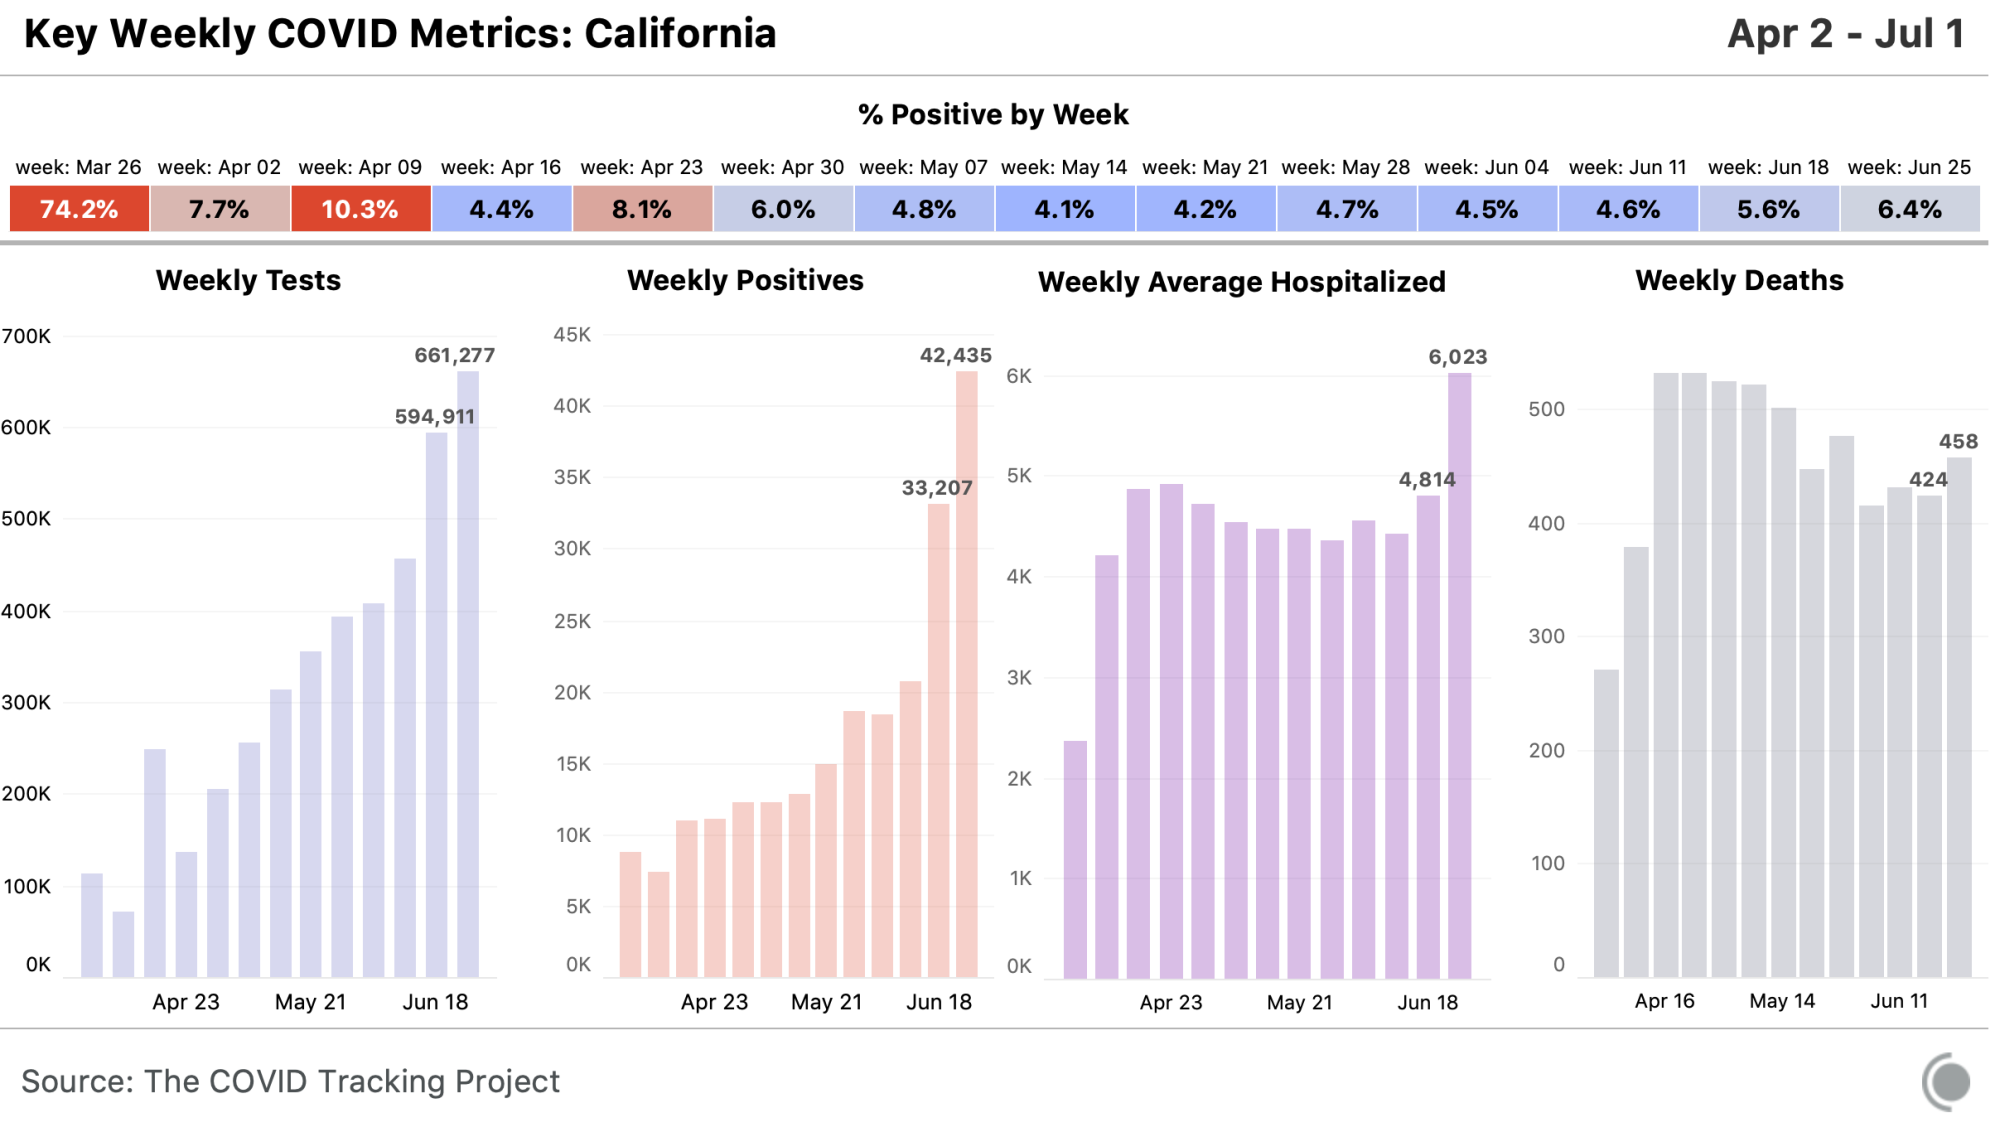 State chart for California, all metrics available at https://covidtracking.com/data/state/california